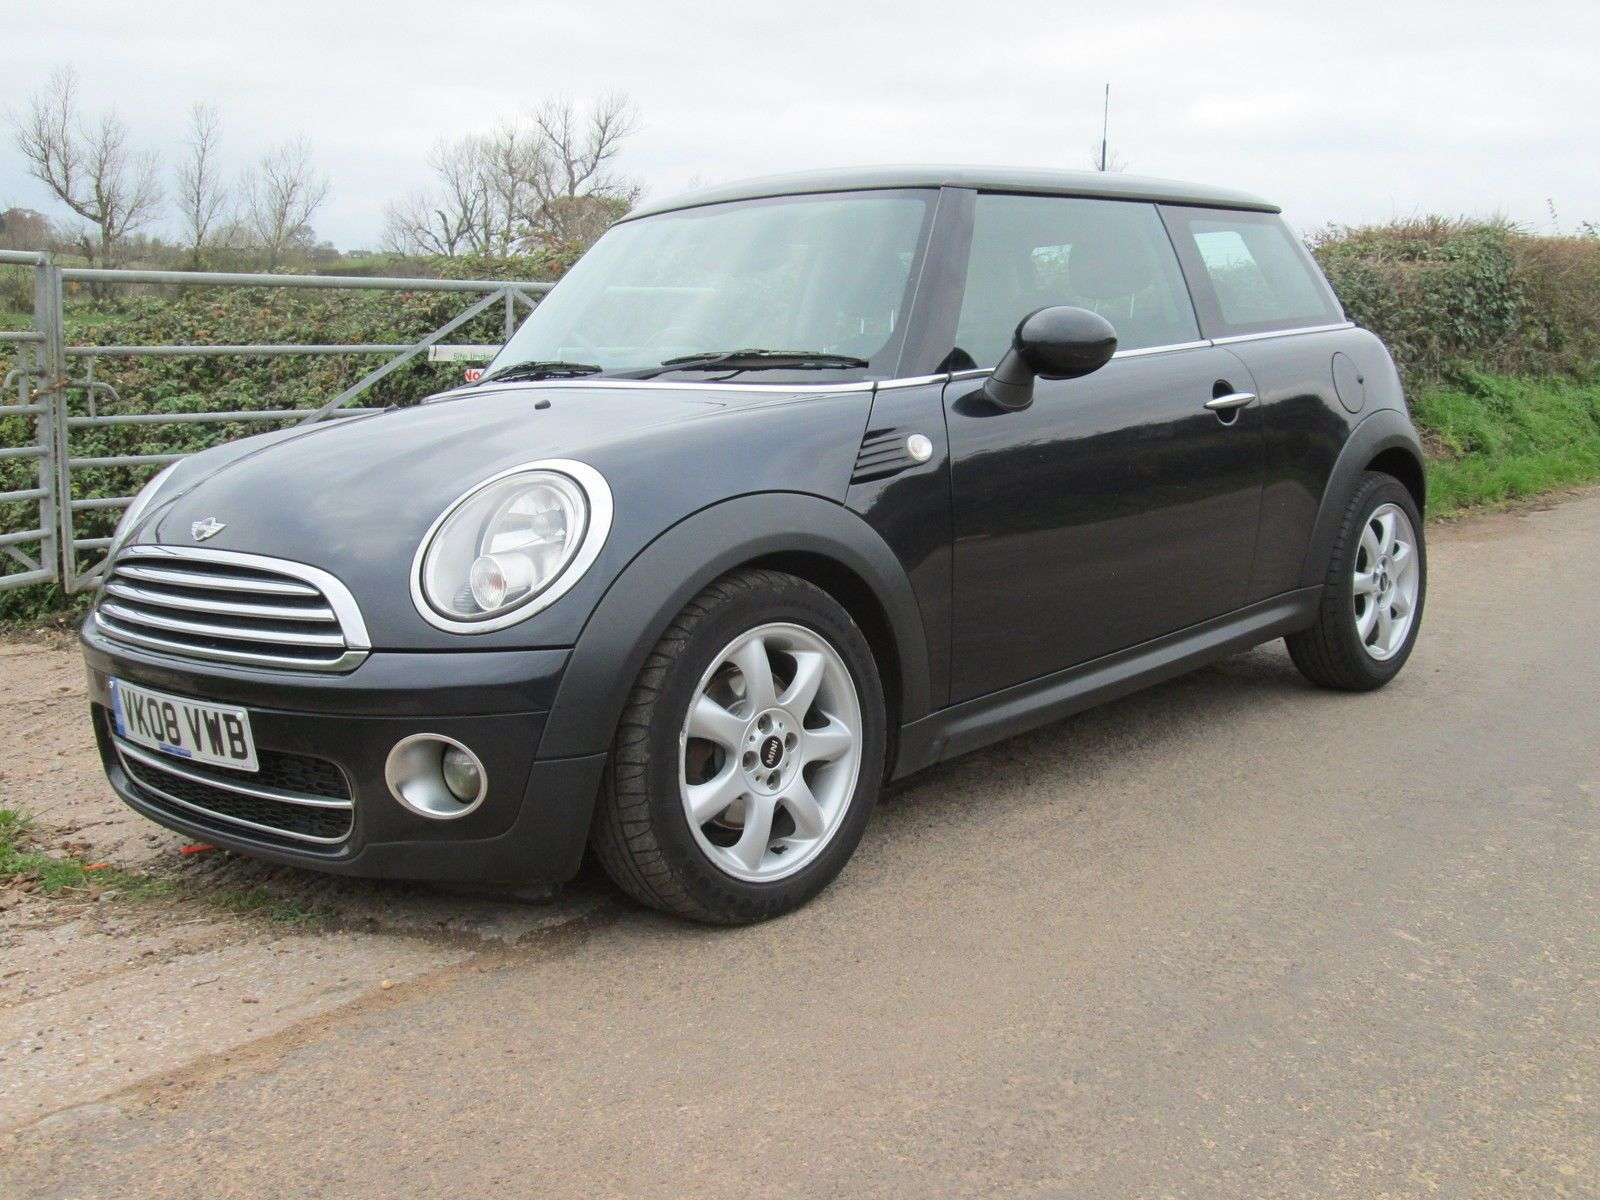 Ebay Mini Cooper Sel No Reserve Grab A True Bargain I Need 7 Seater